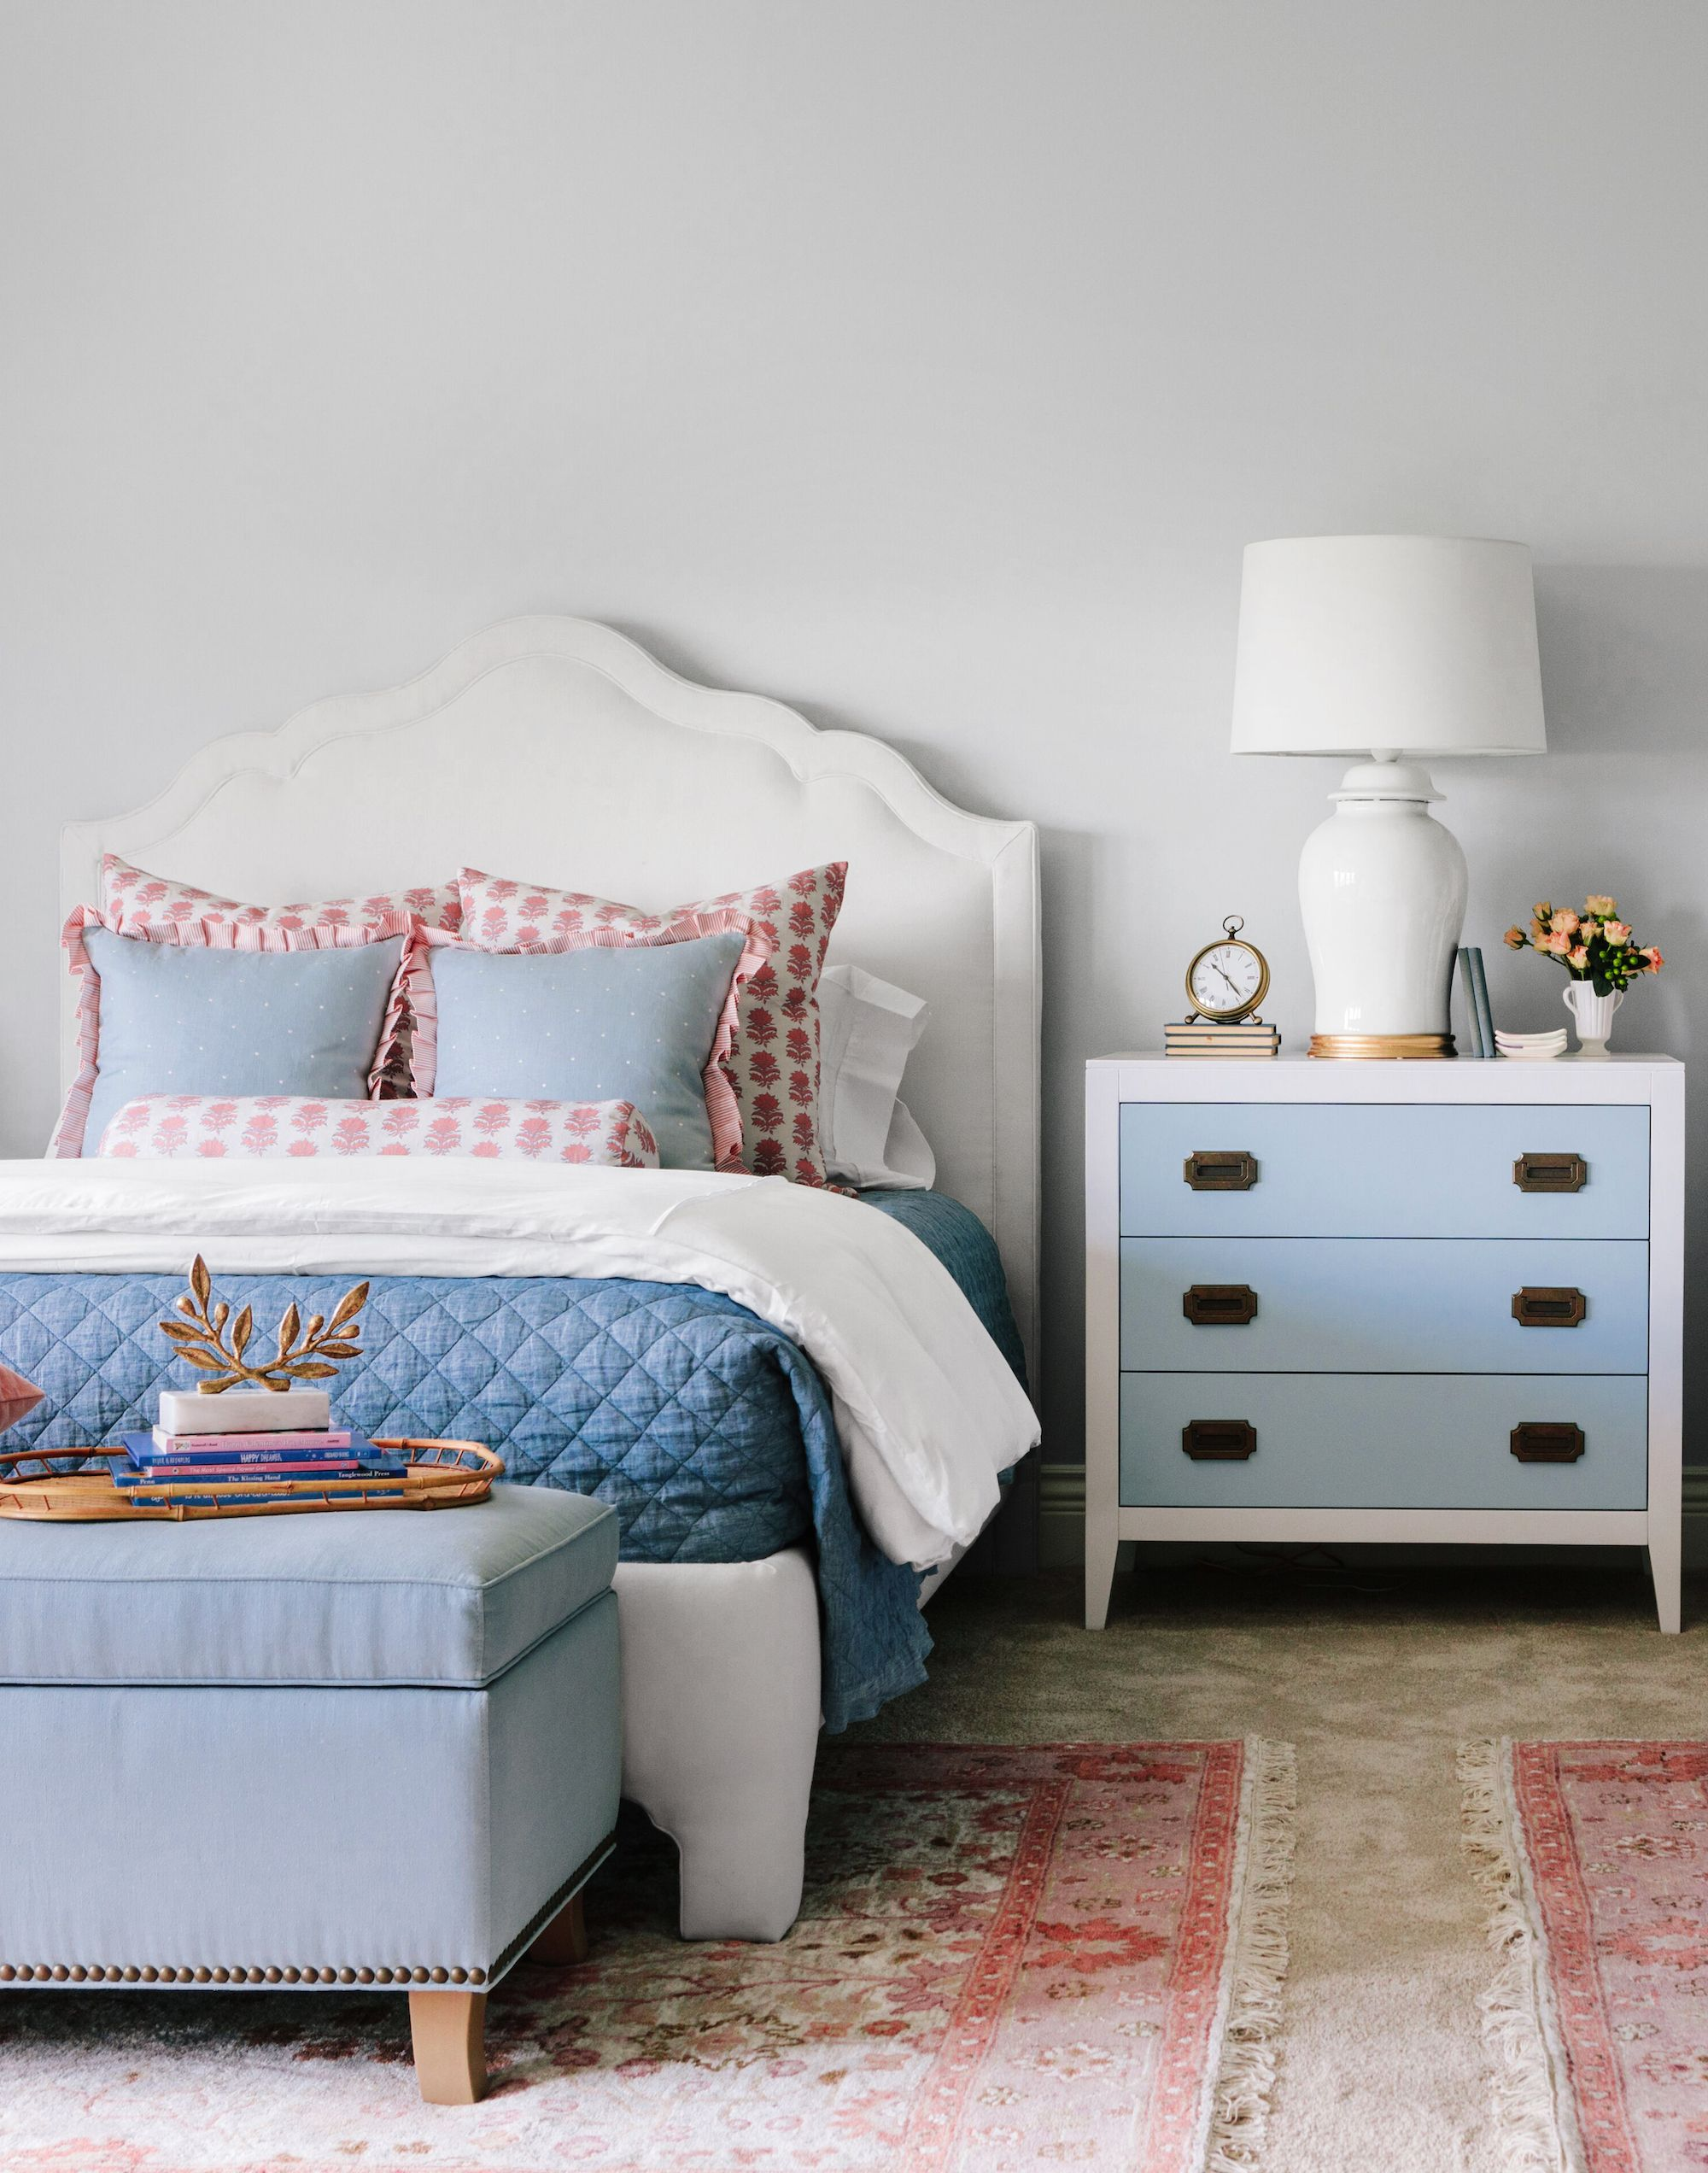 20 Guest Room Ideas Small Bedroom Decor